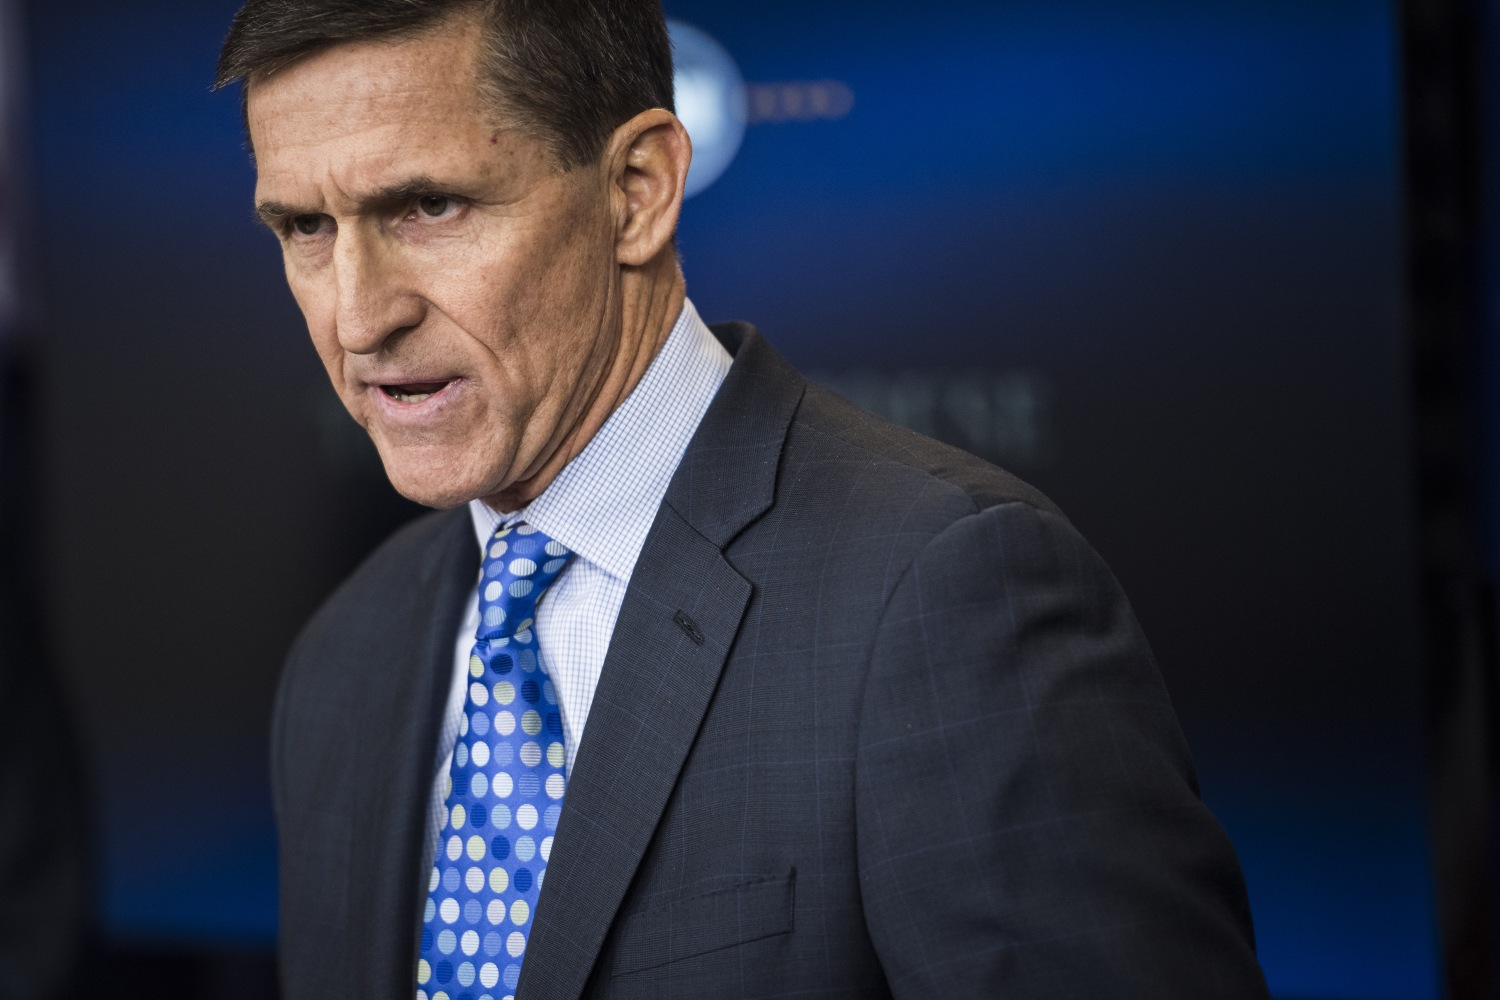 Should Michael Flynn face charges for not disclosing payments from Russian Federation?